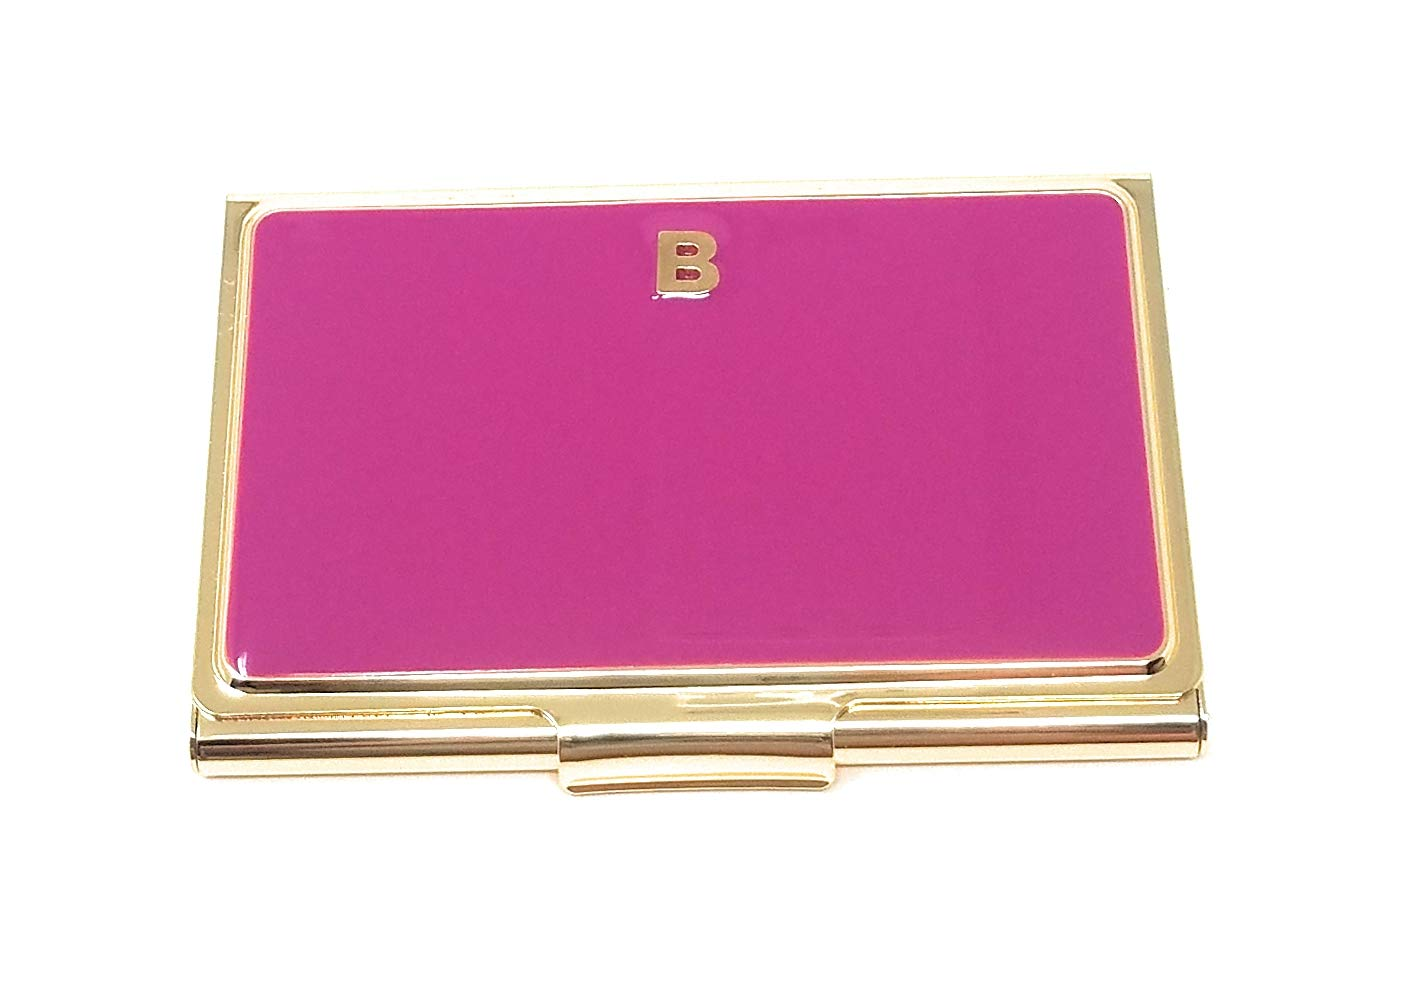 Kate Spade One In A Million Business Card Holder Initial''B'', Fuchsia/Gold